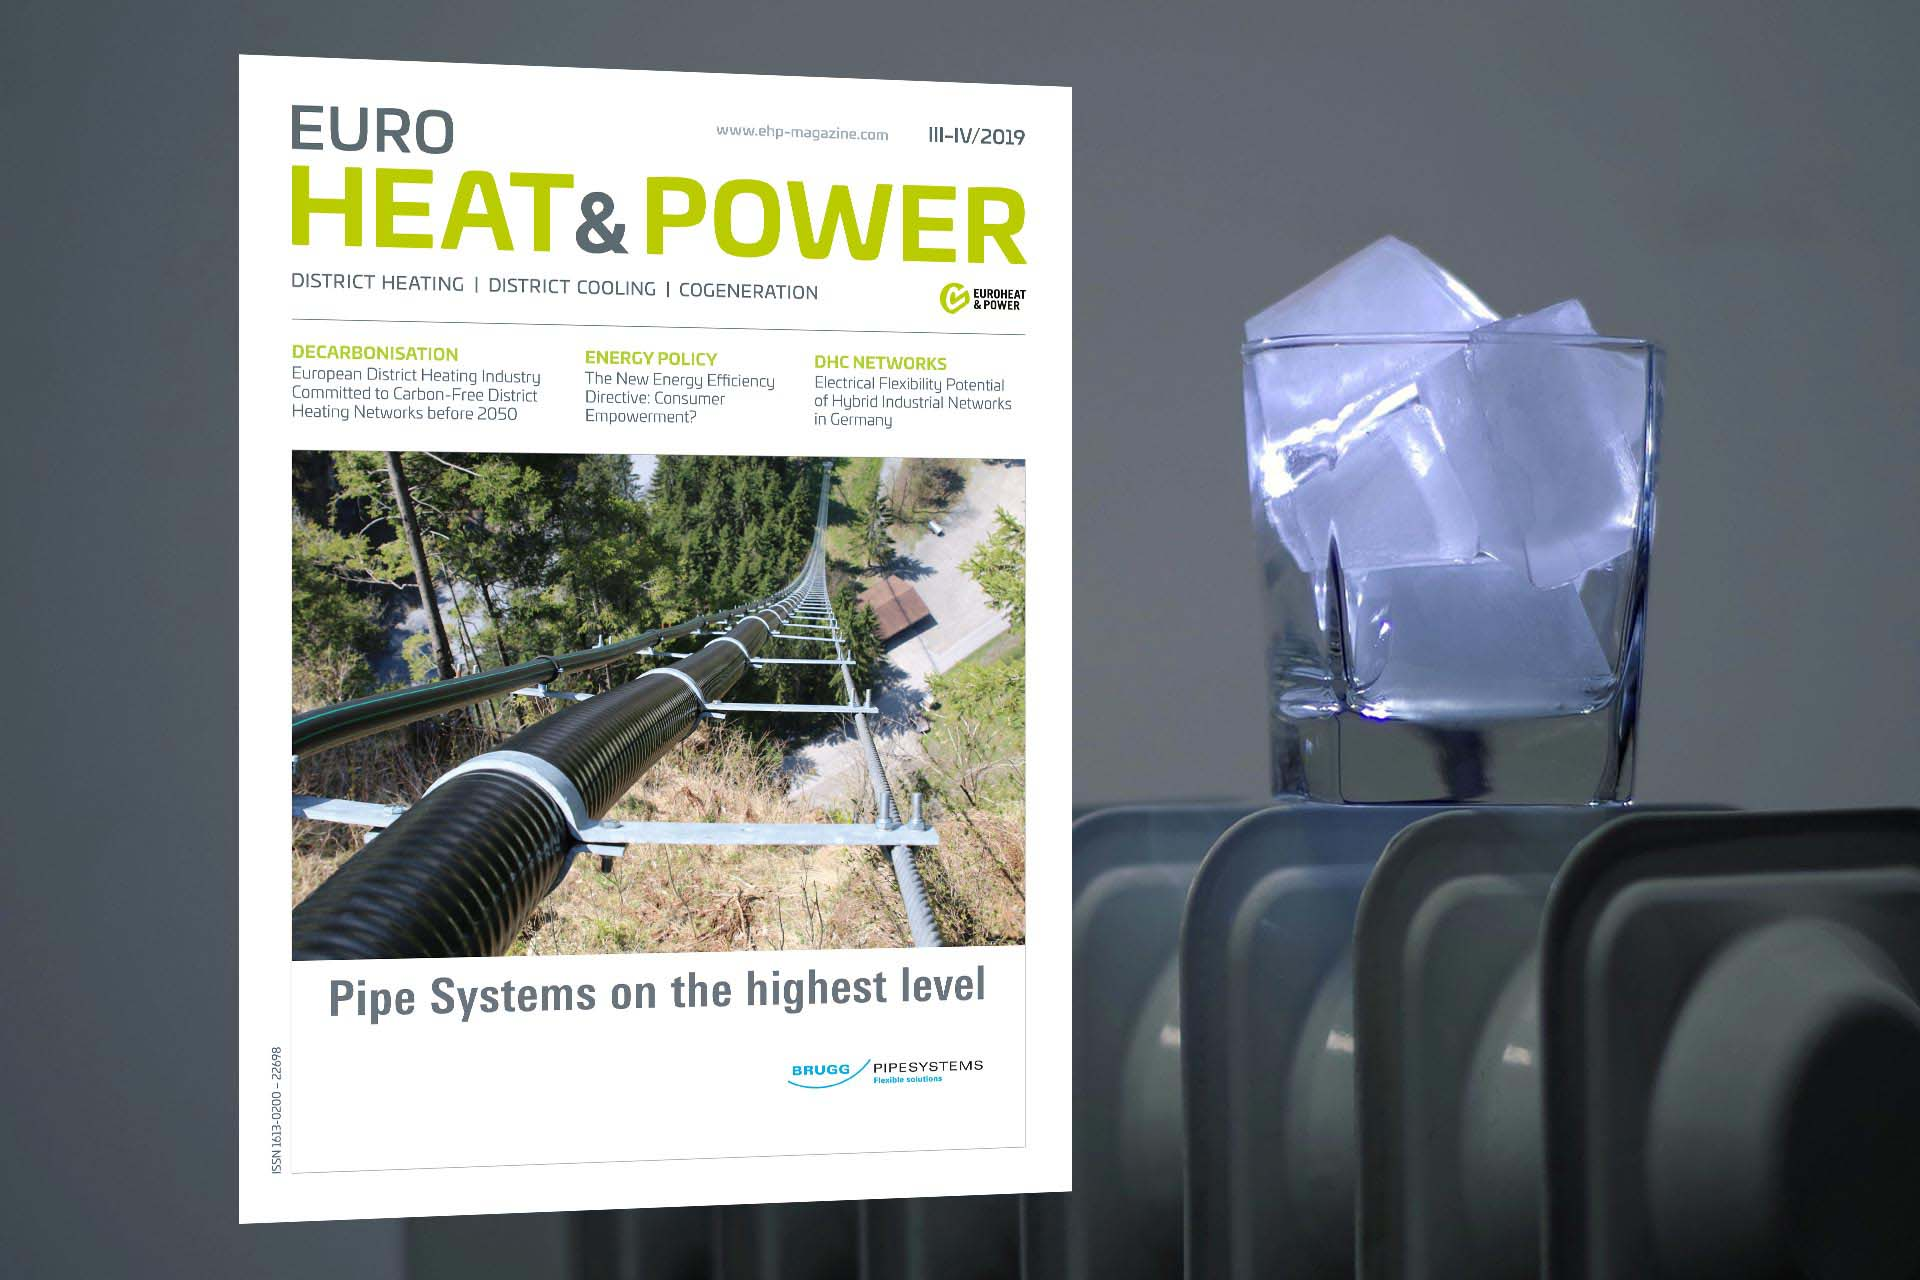 EUROHEAT&POWER international comes with news design